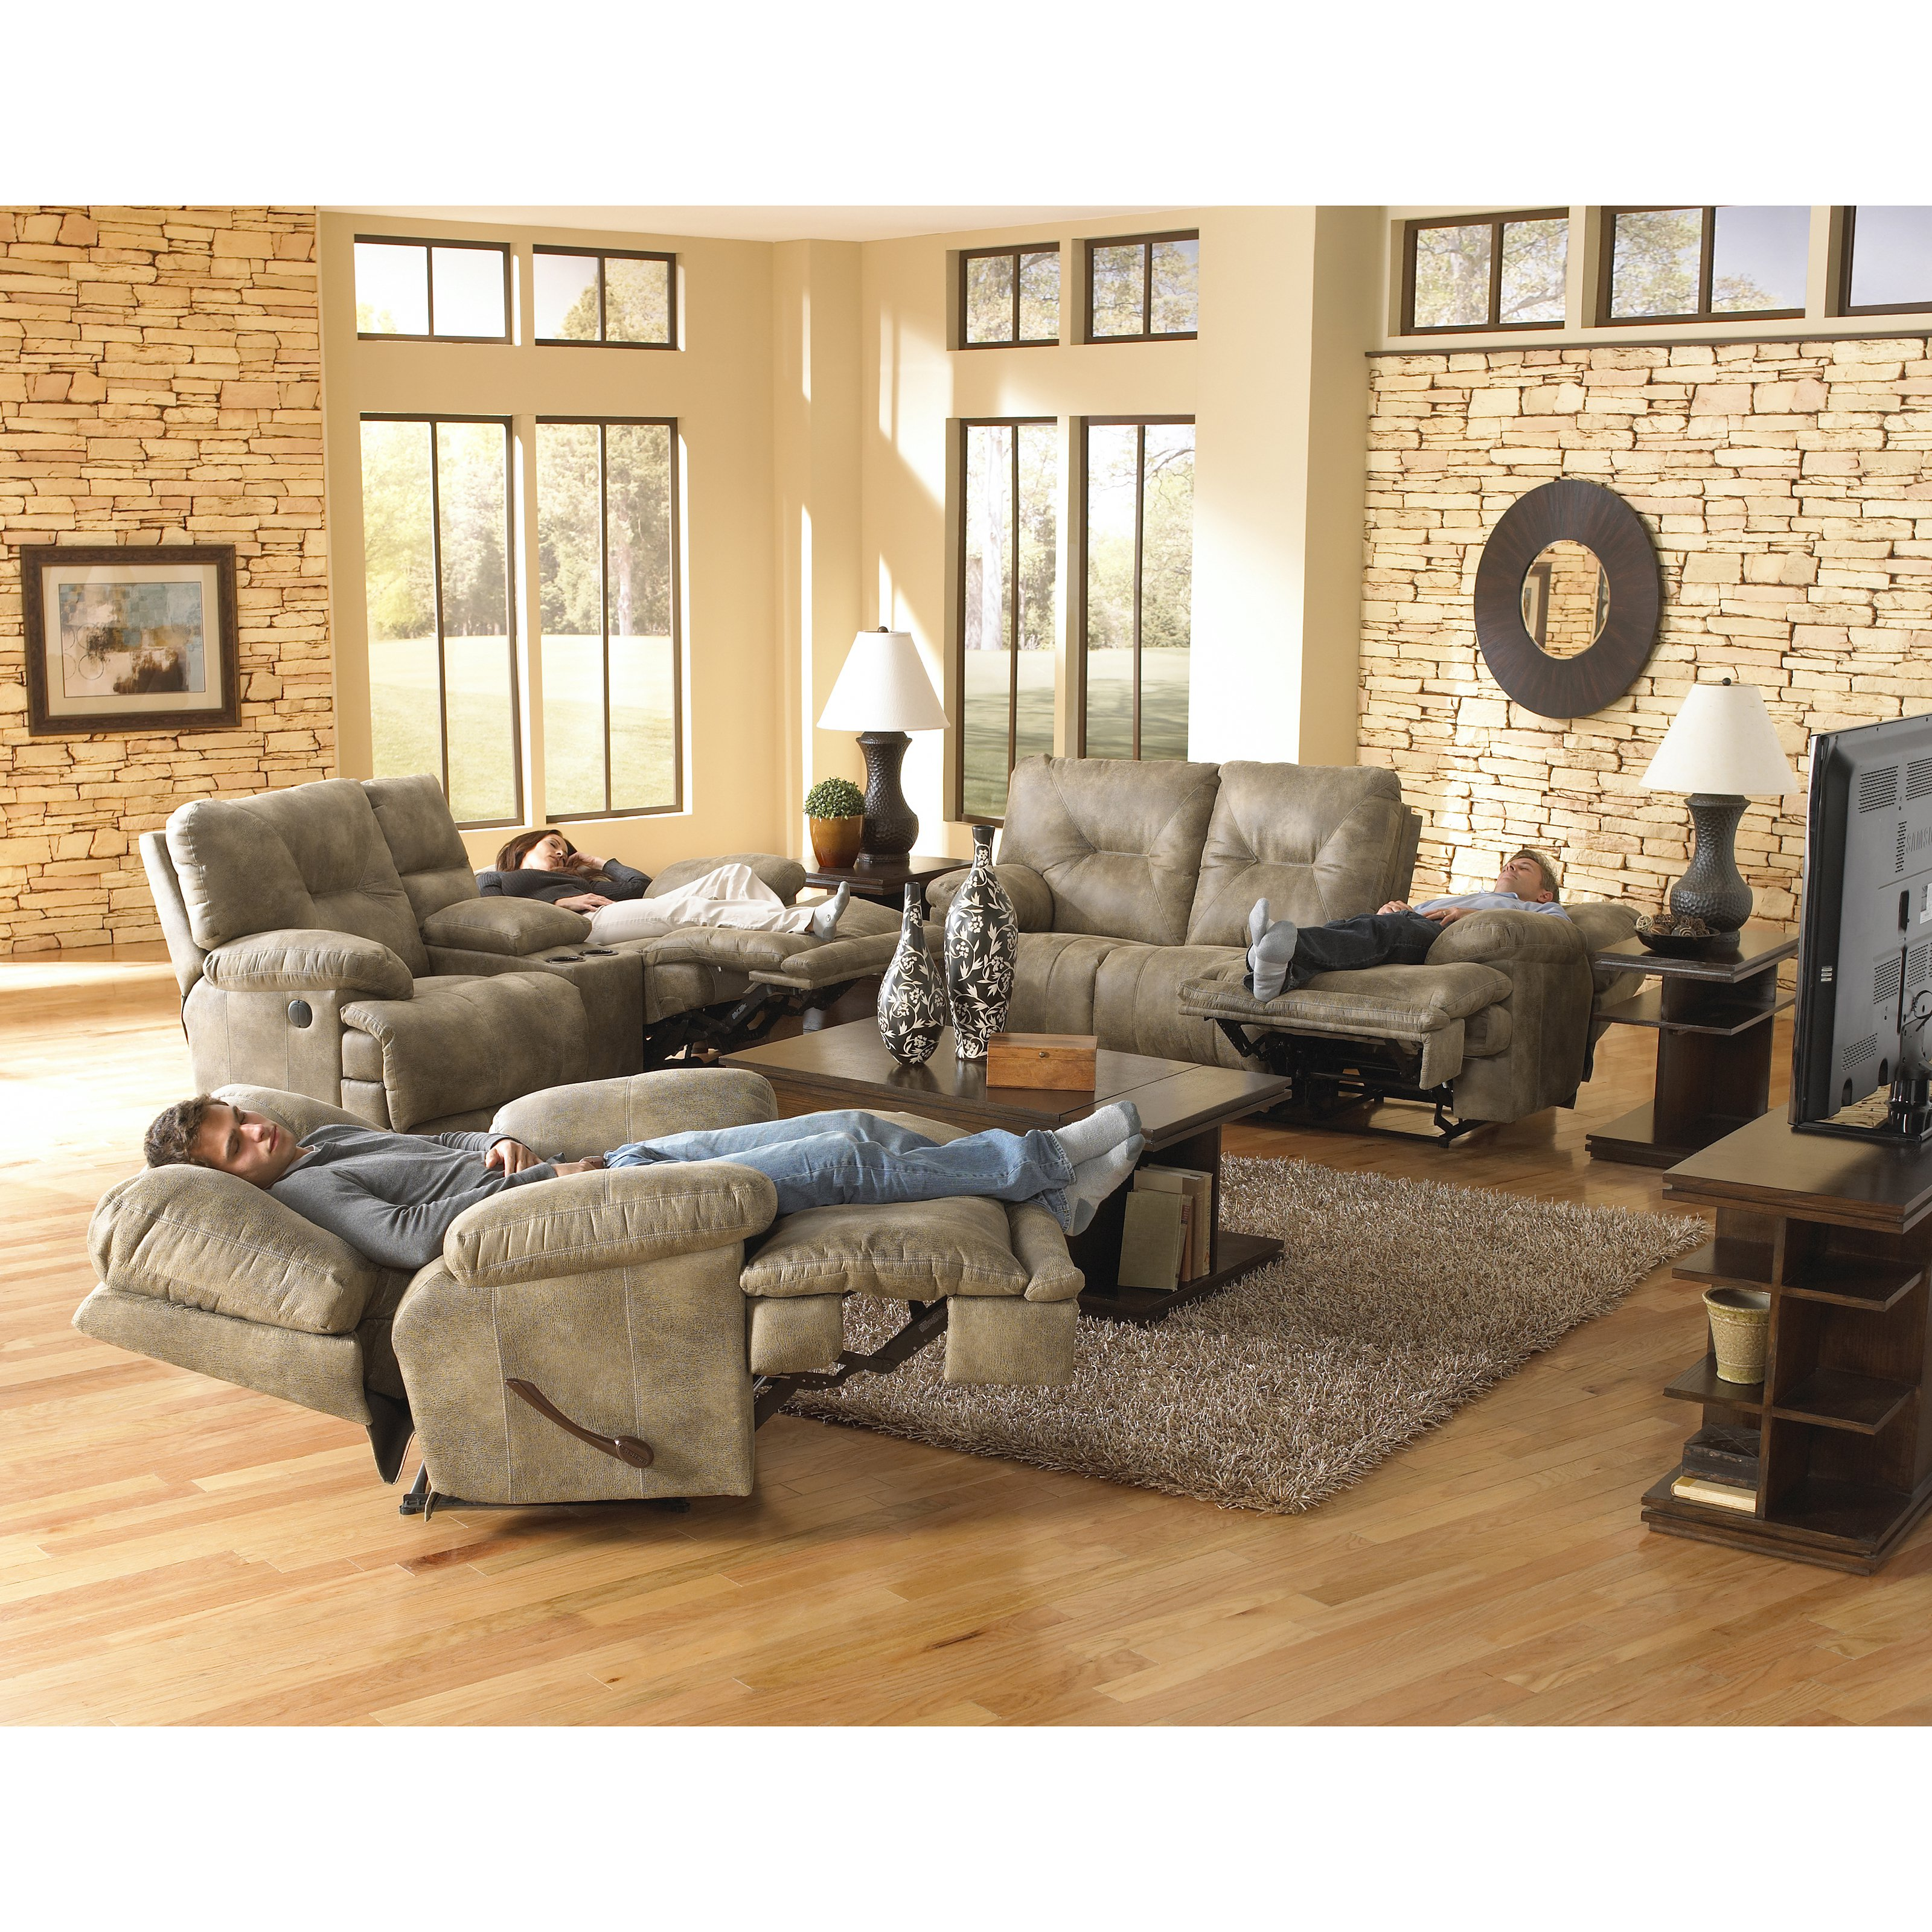 Catnapper Voyager Reclining Sofa Set - Brandy